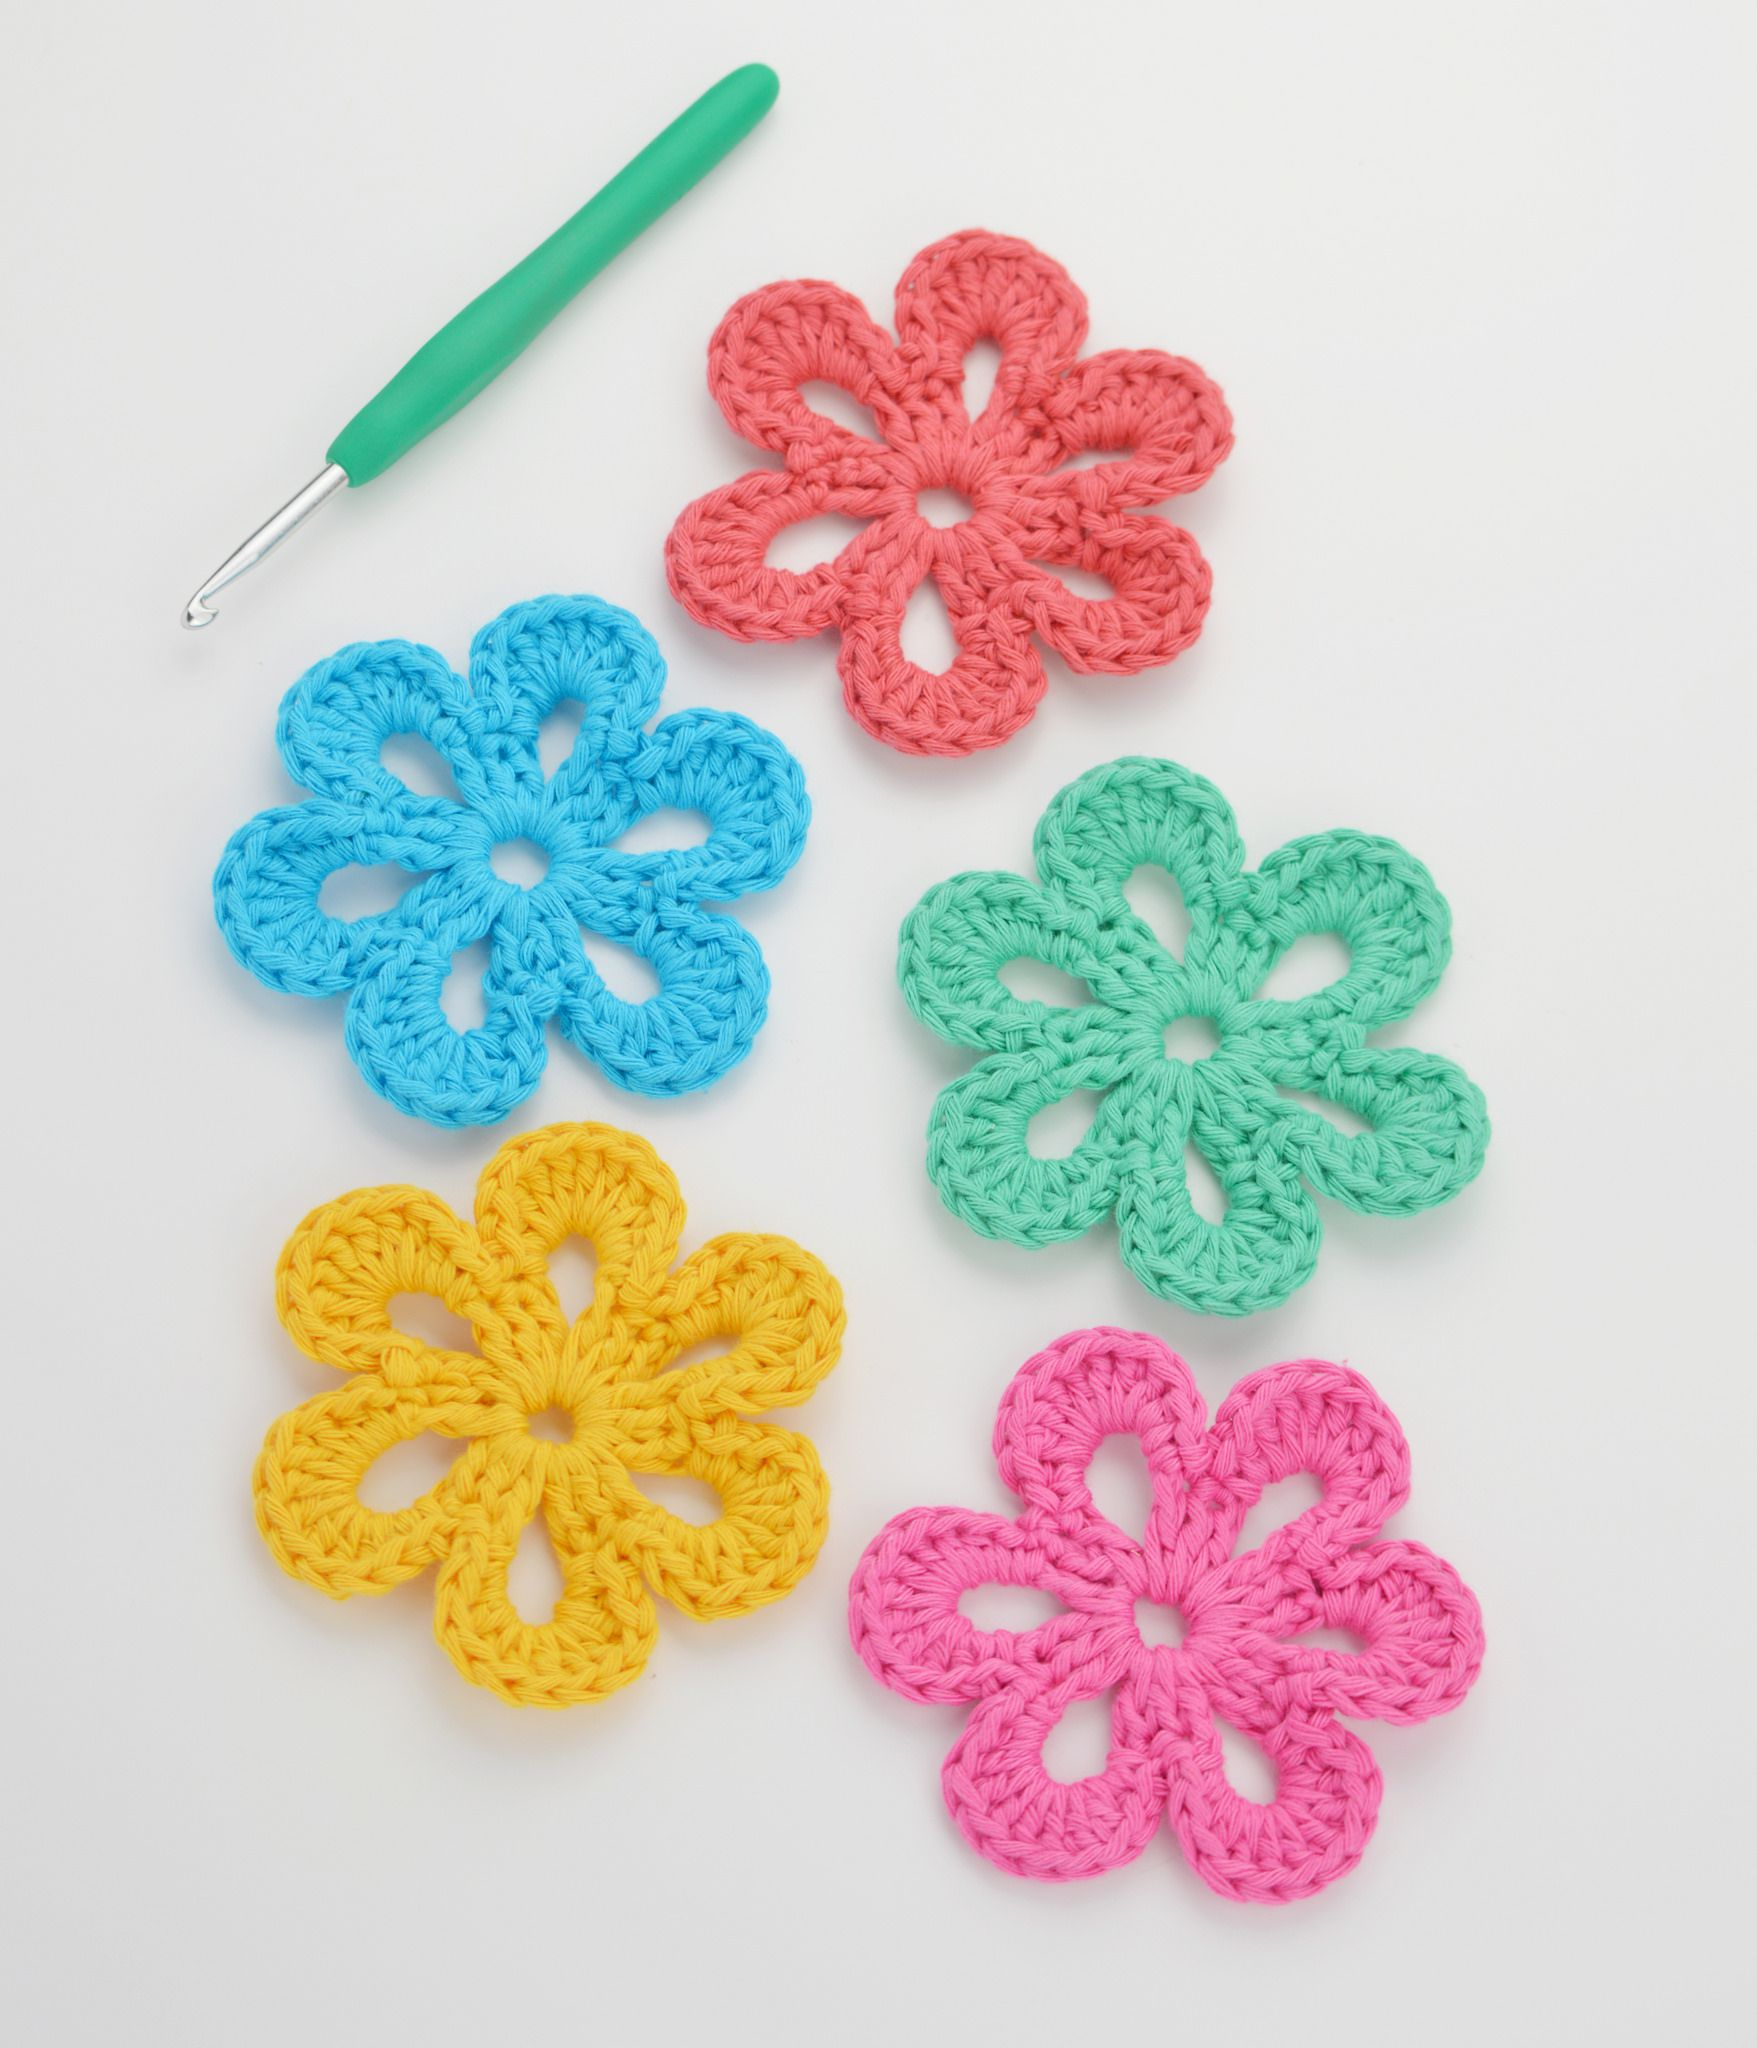 Easy free crochet patterns for beginners easy free crochet flower pattern beginner crochet bankloansurffo Image collections